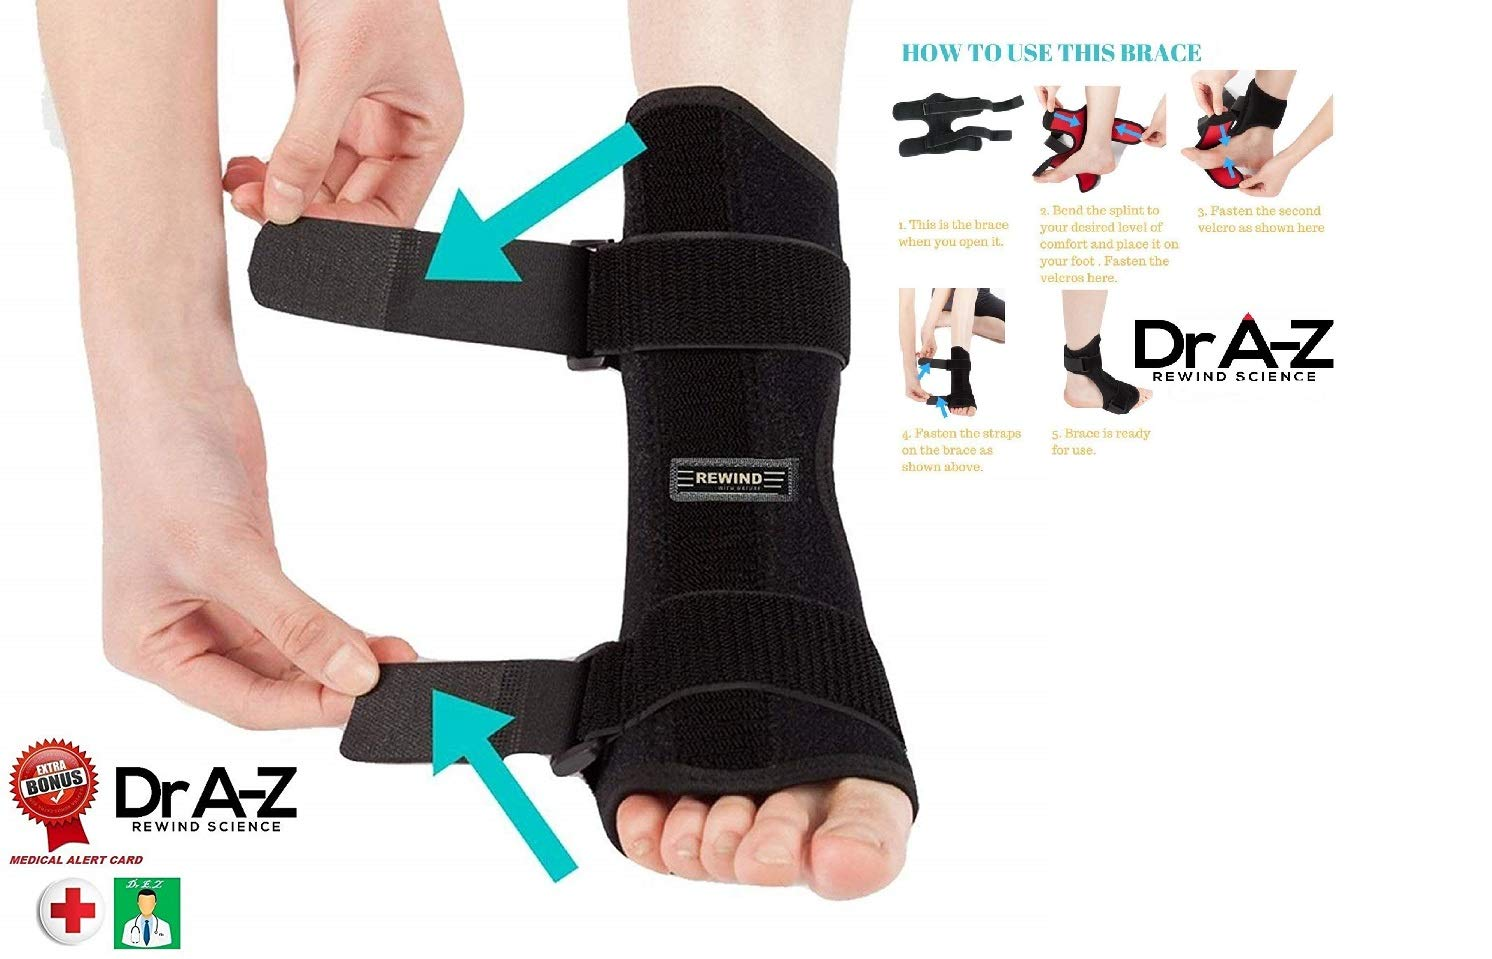 3eeddb6e4b Dr A-Z Dorsal Night Splint Ankle Support Brace Plantar Fasciitis Feet Ankle  Brace Arch Support Pain Relief Effective for Heel ...